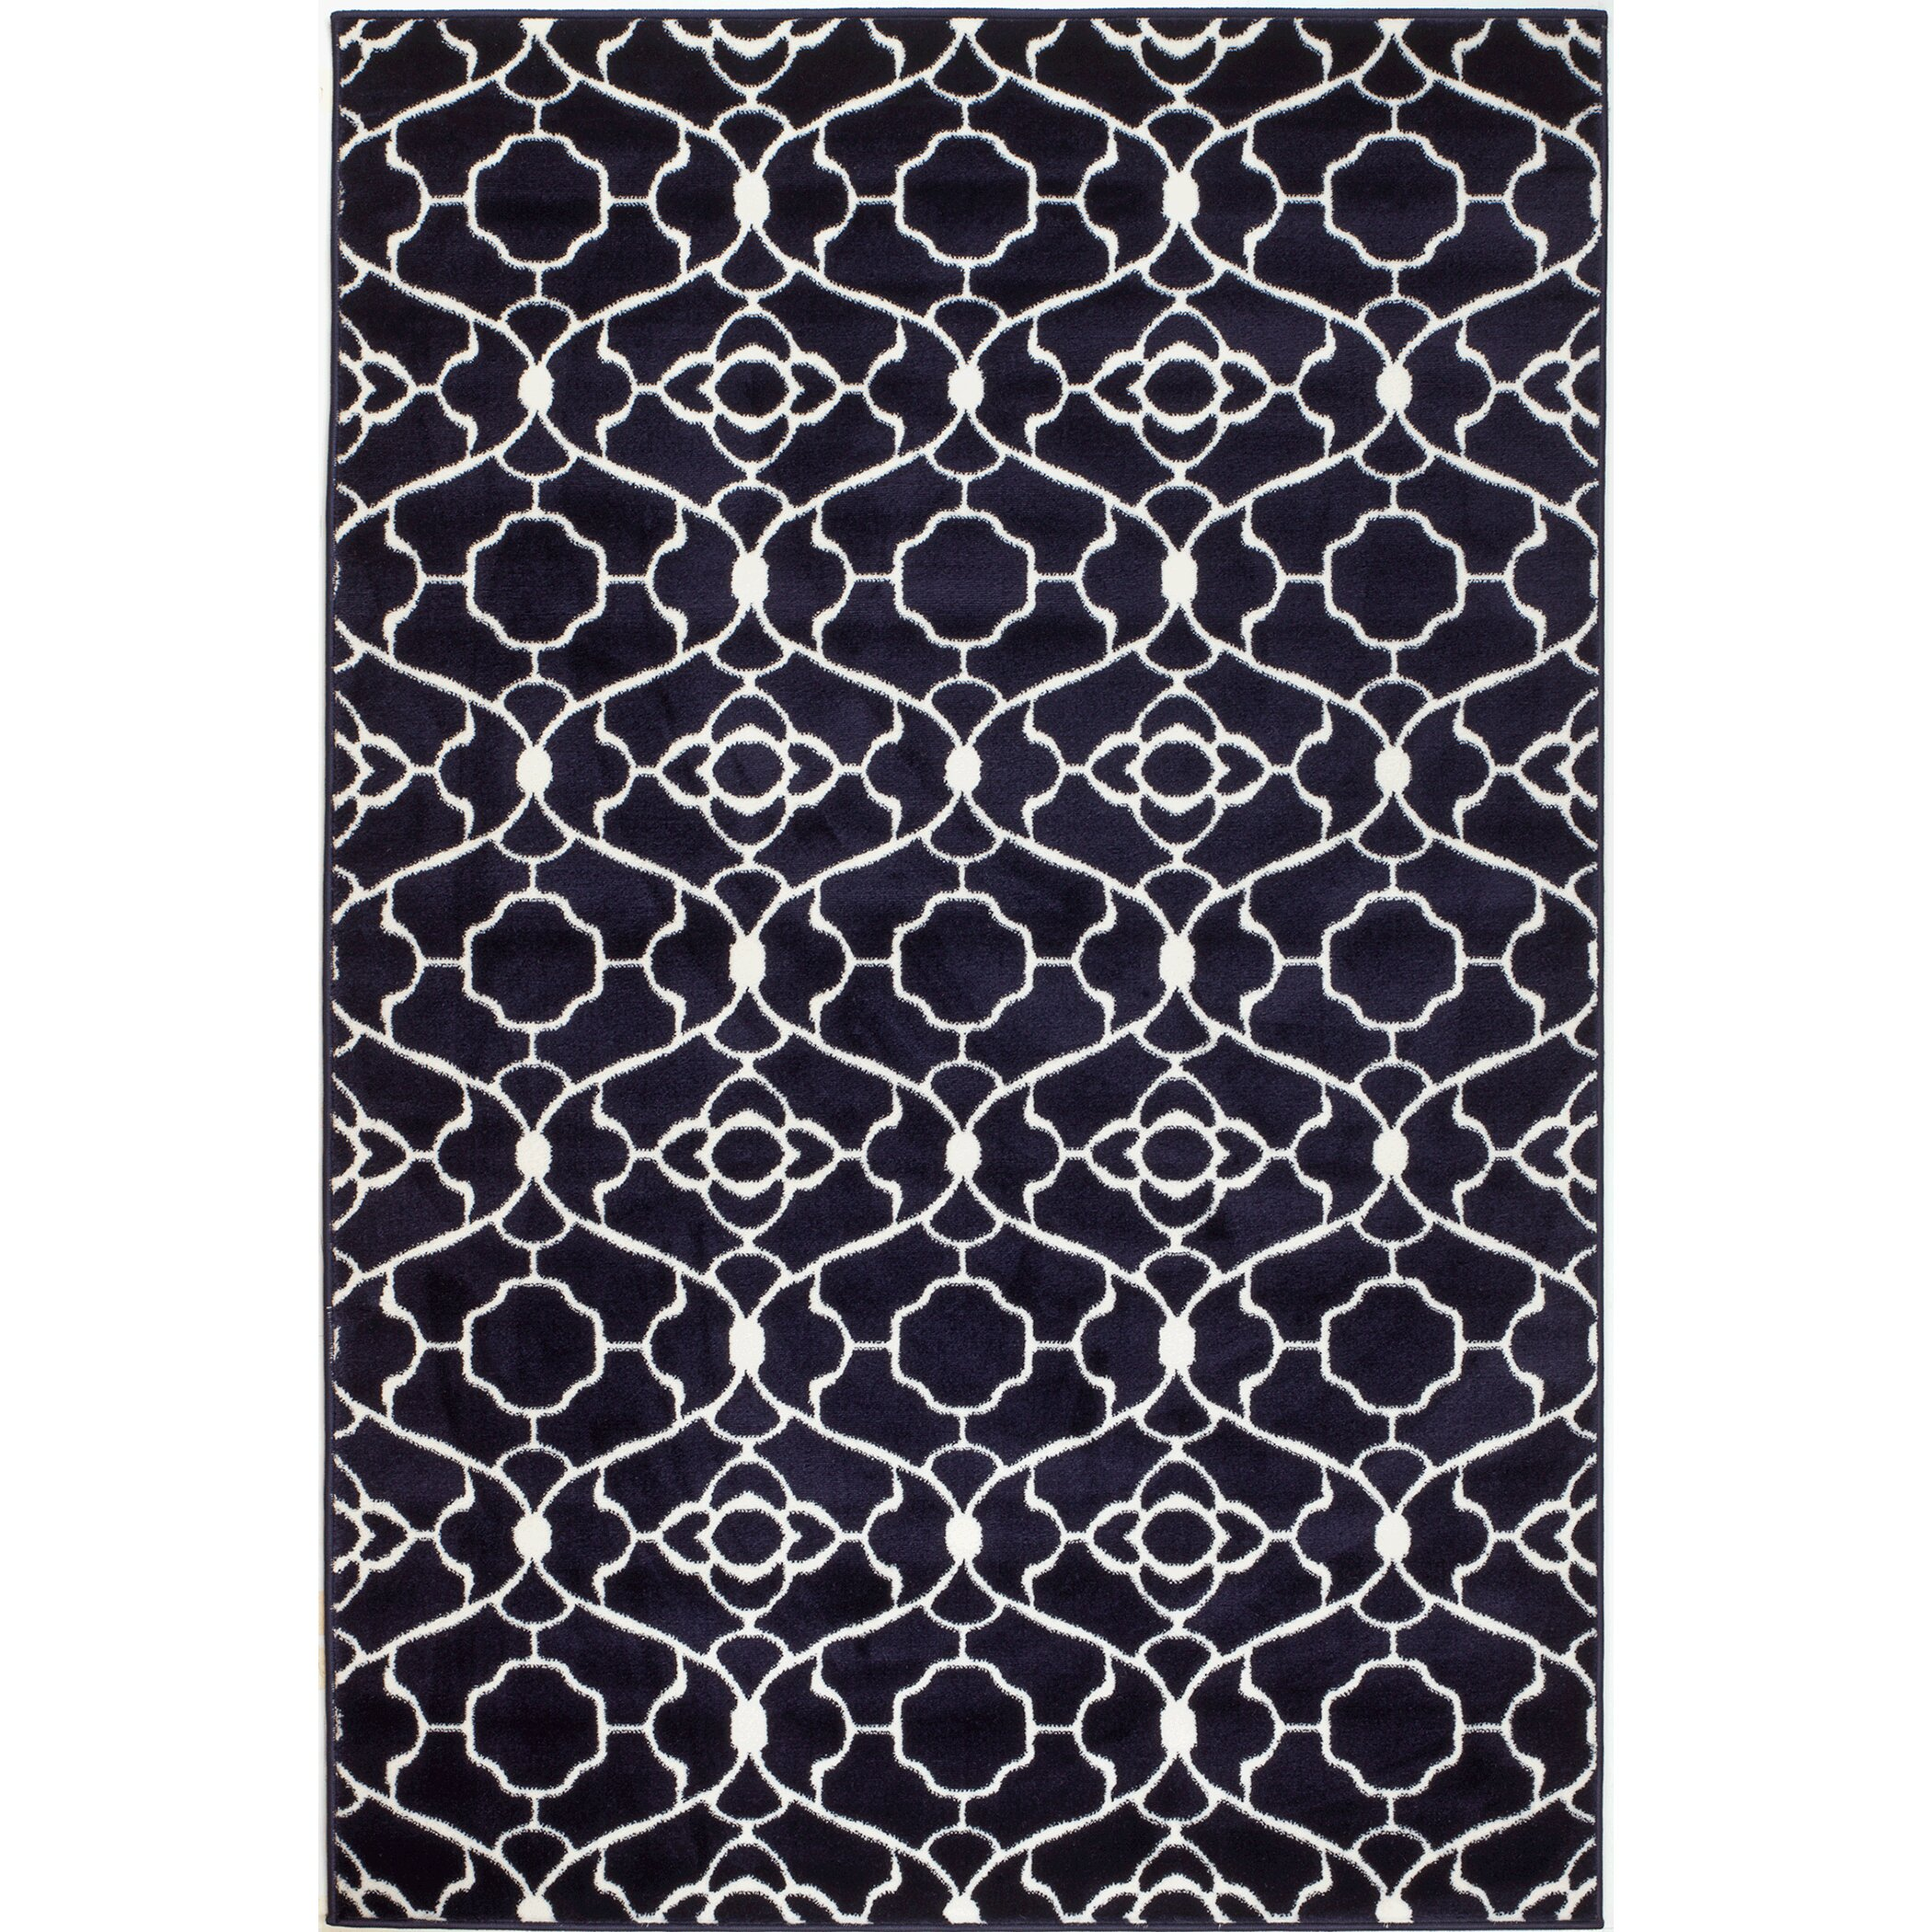 Rug And Decor Inc Summit Elite Navy Blue Area Rug Reviews Wayfair